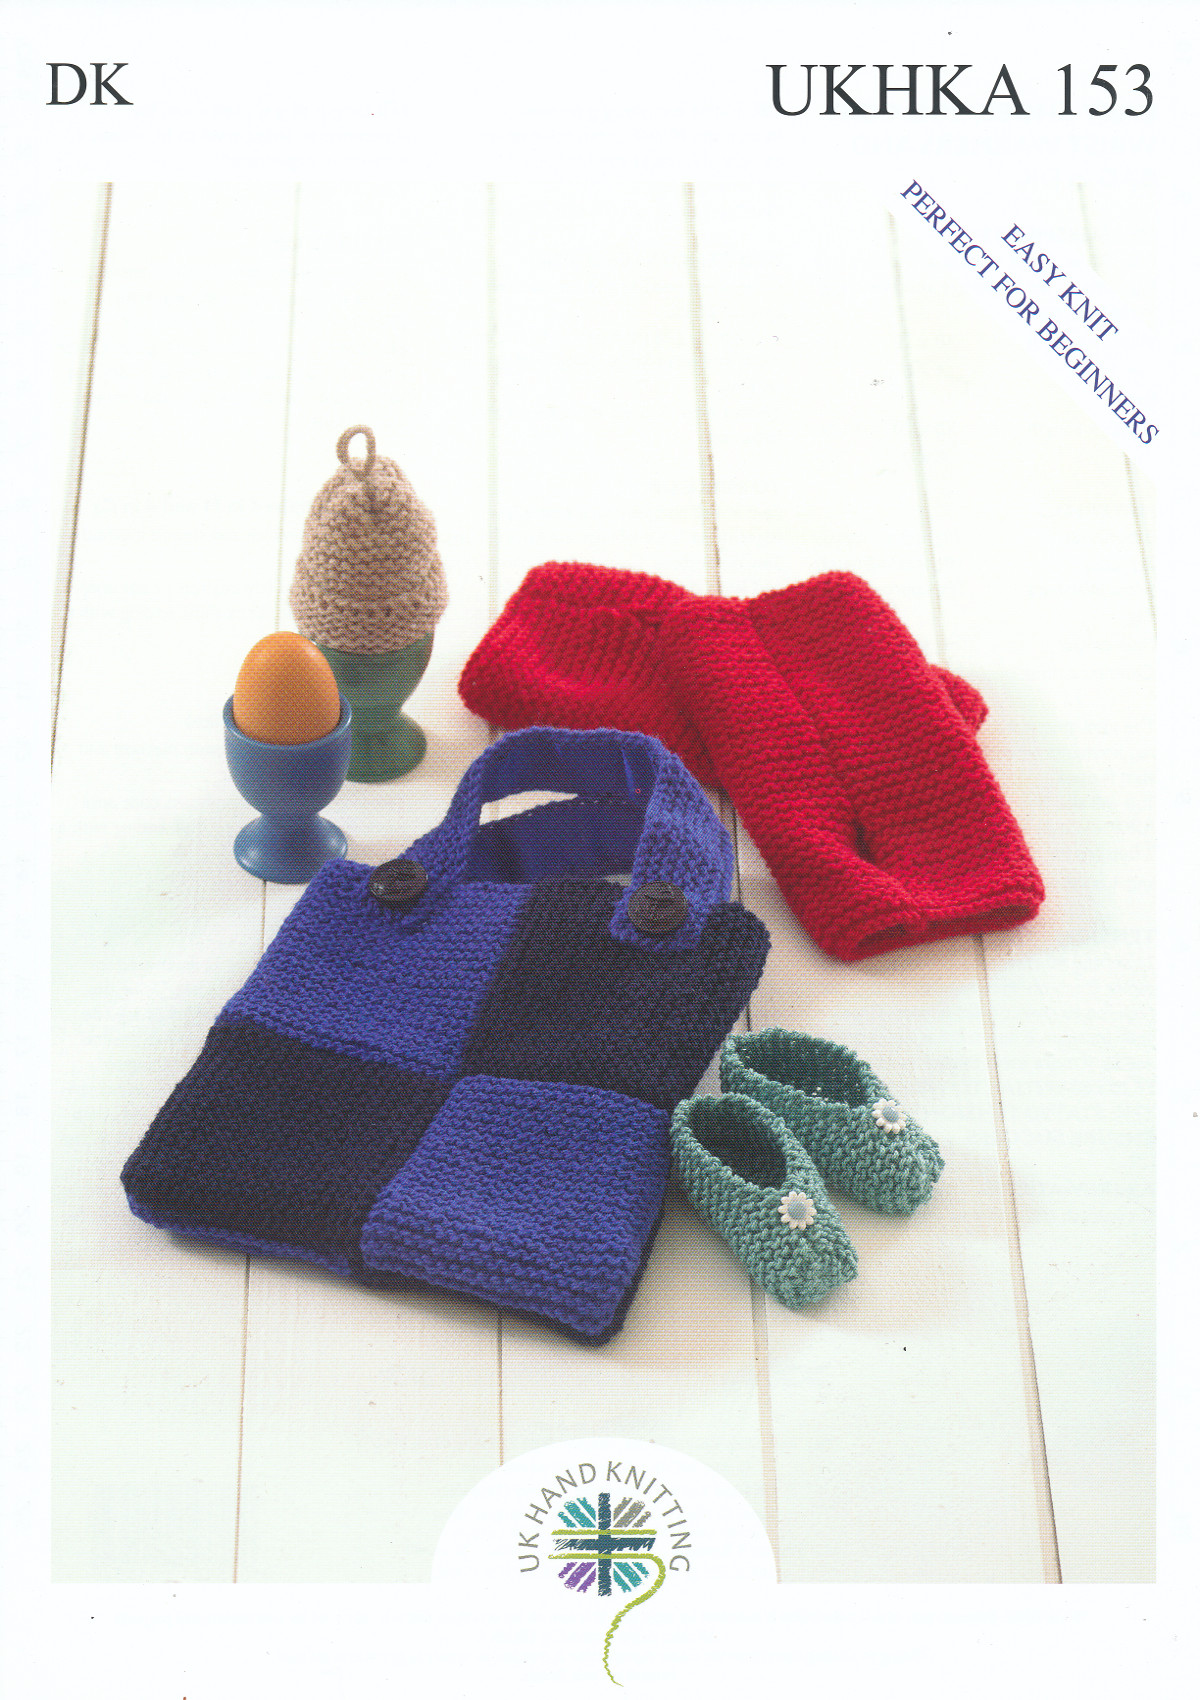 Easy Knit Baby Shoes Egg Cosy Wrist Warmers & Bag DK Knitting ...